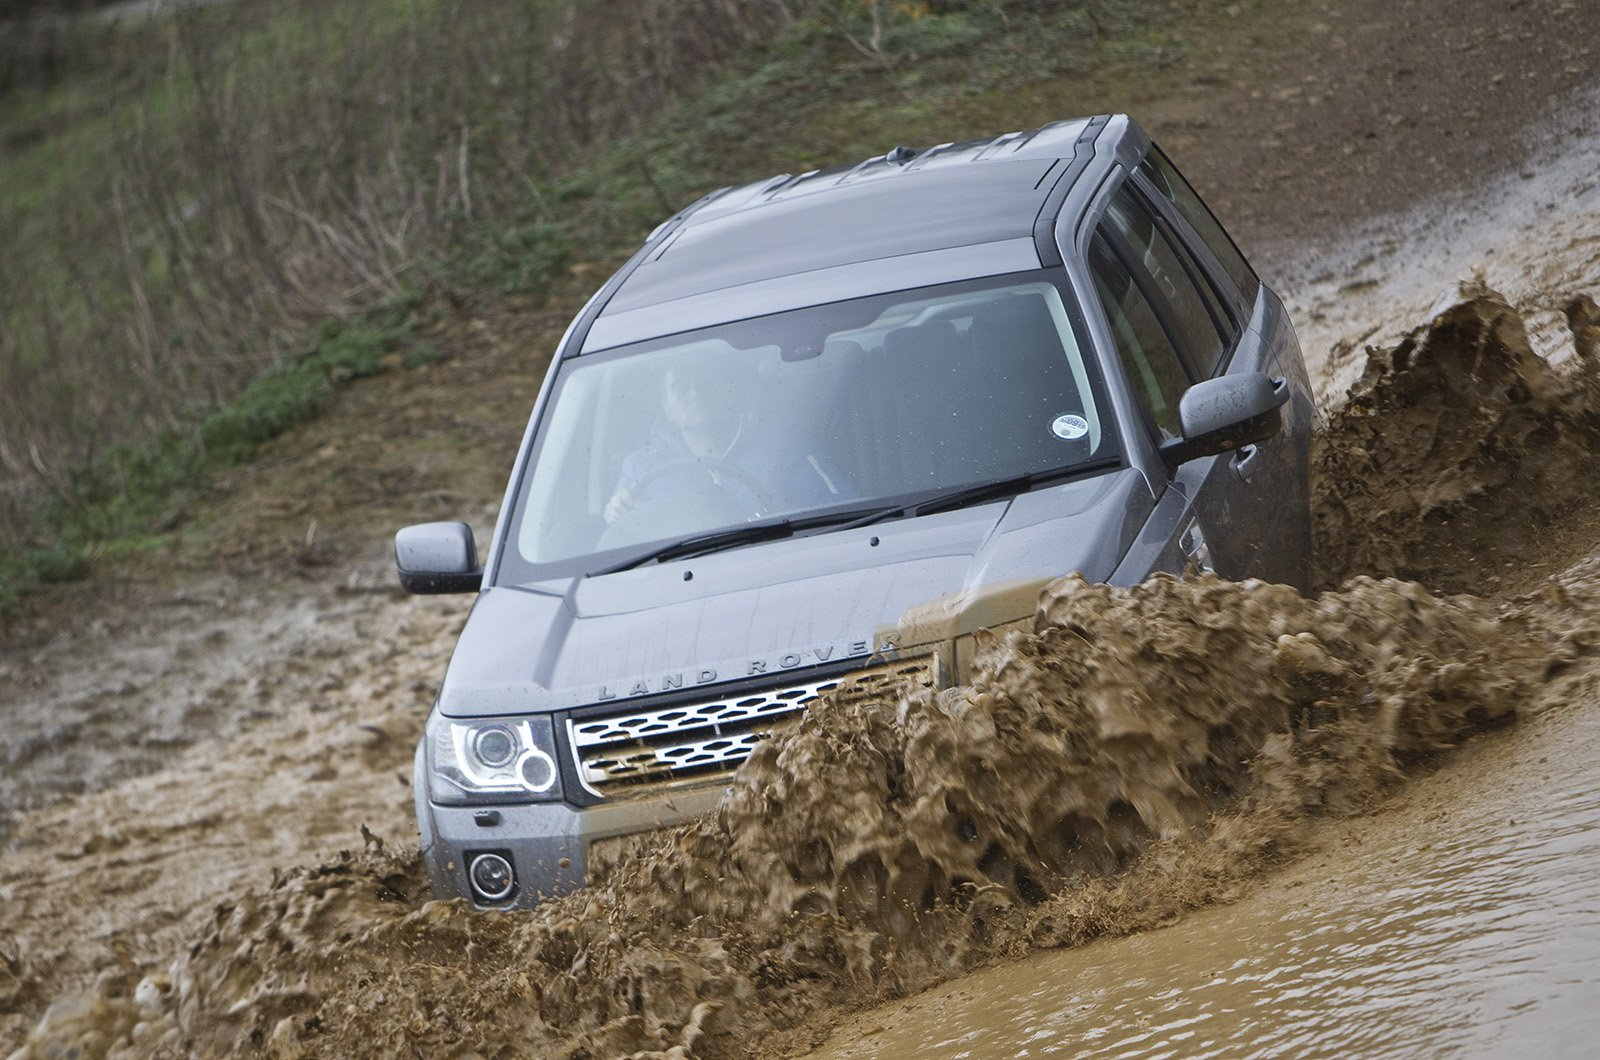 Land Rover Freelander driving through water